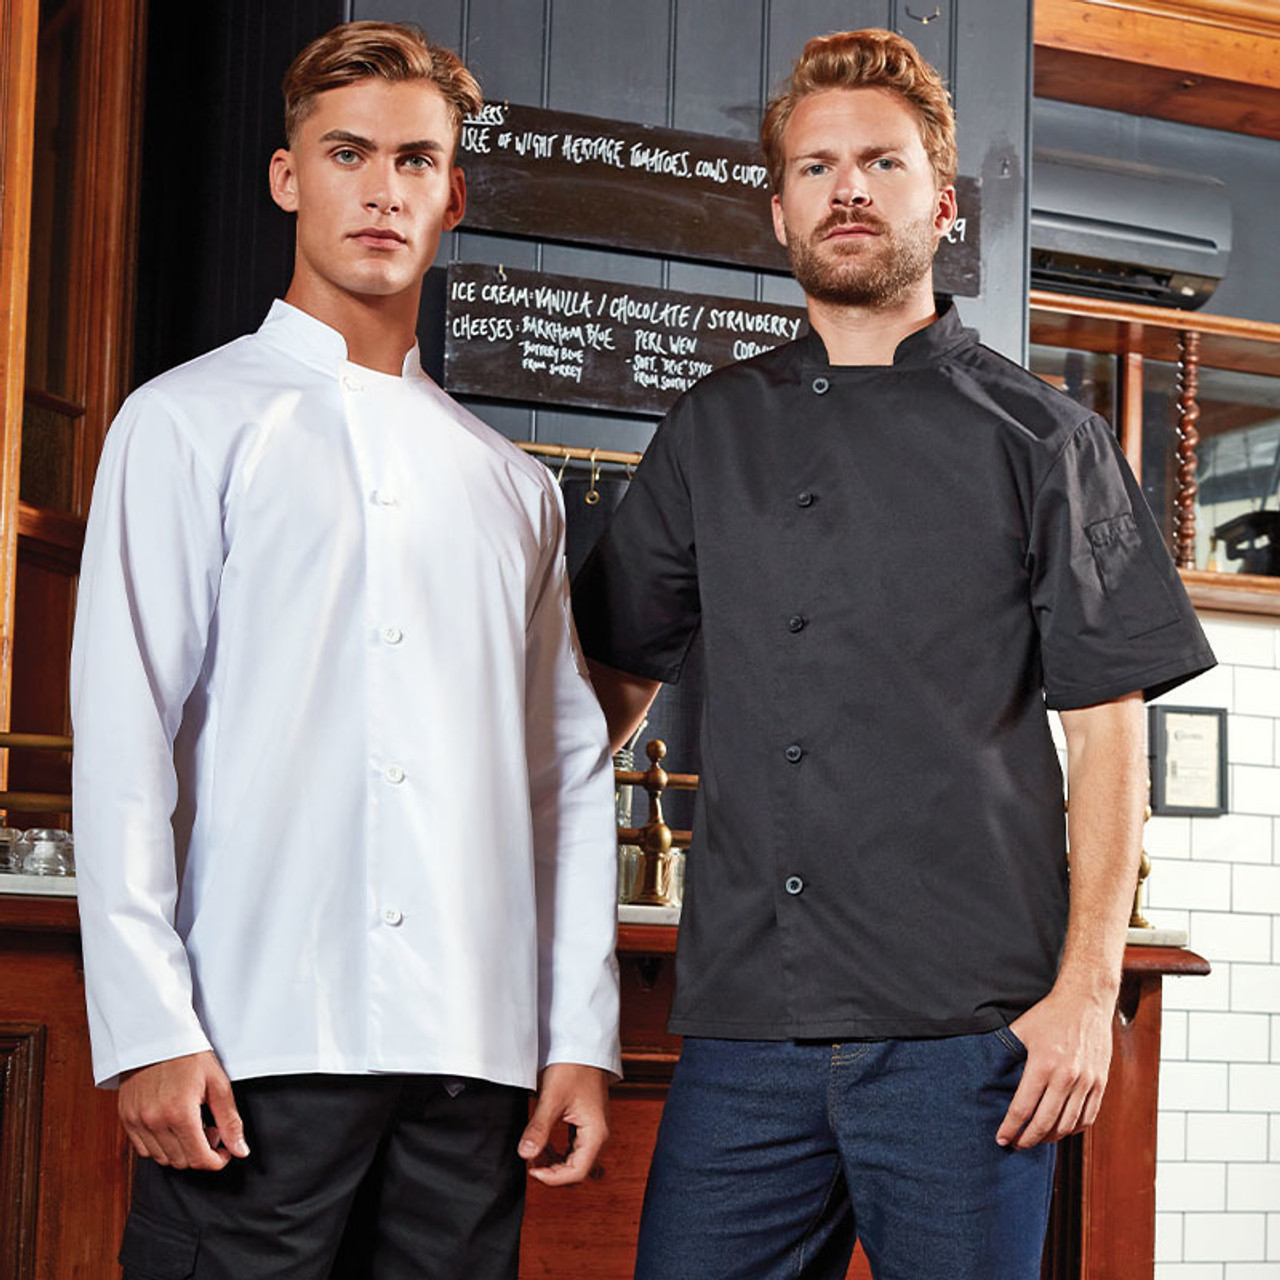 Chef and Kitchen Wear